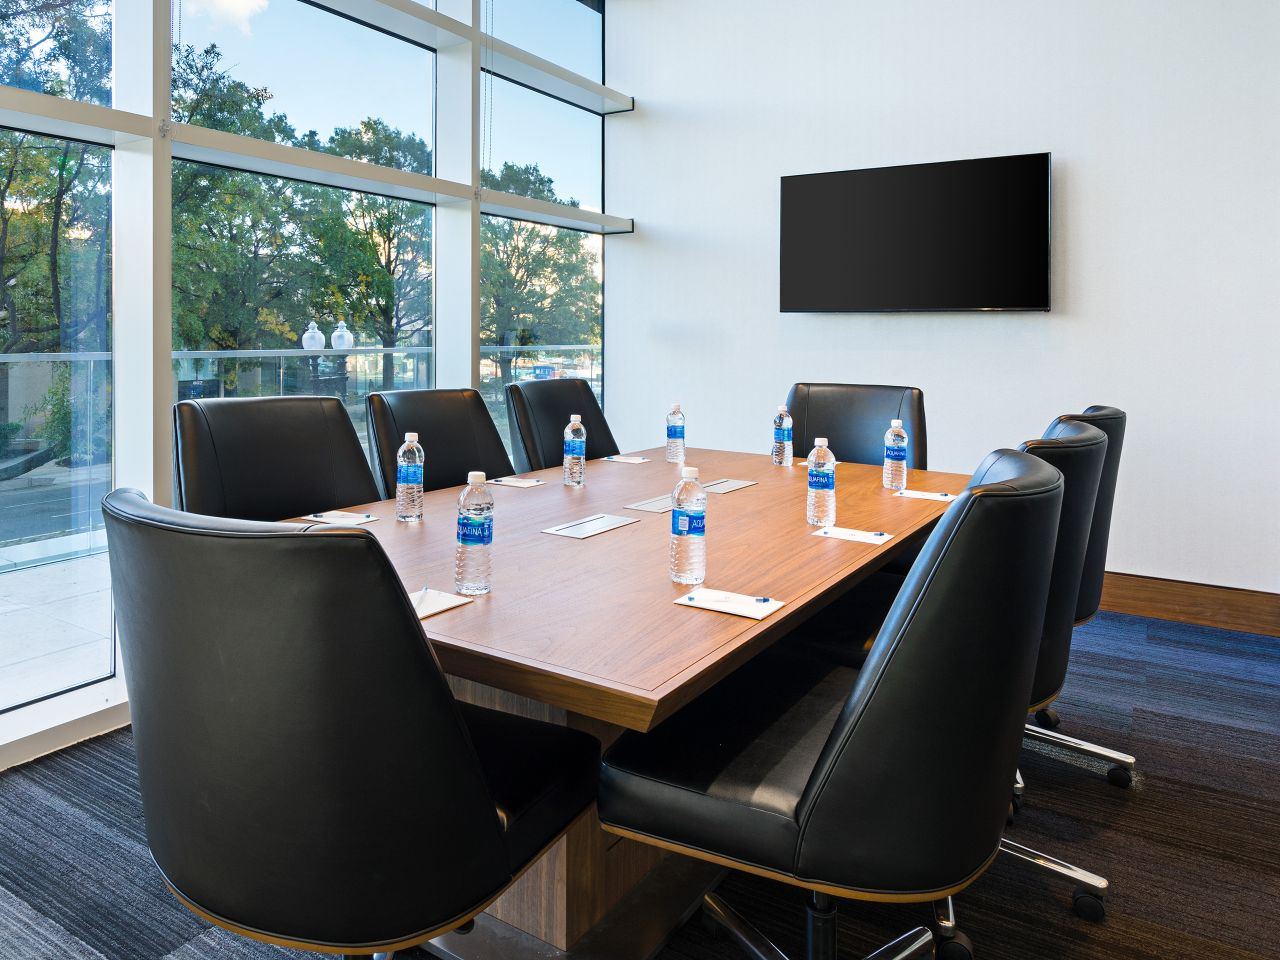 Hyatt House Washington DC, boardroom